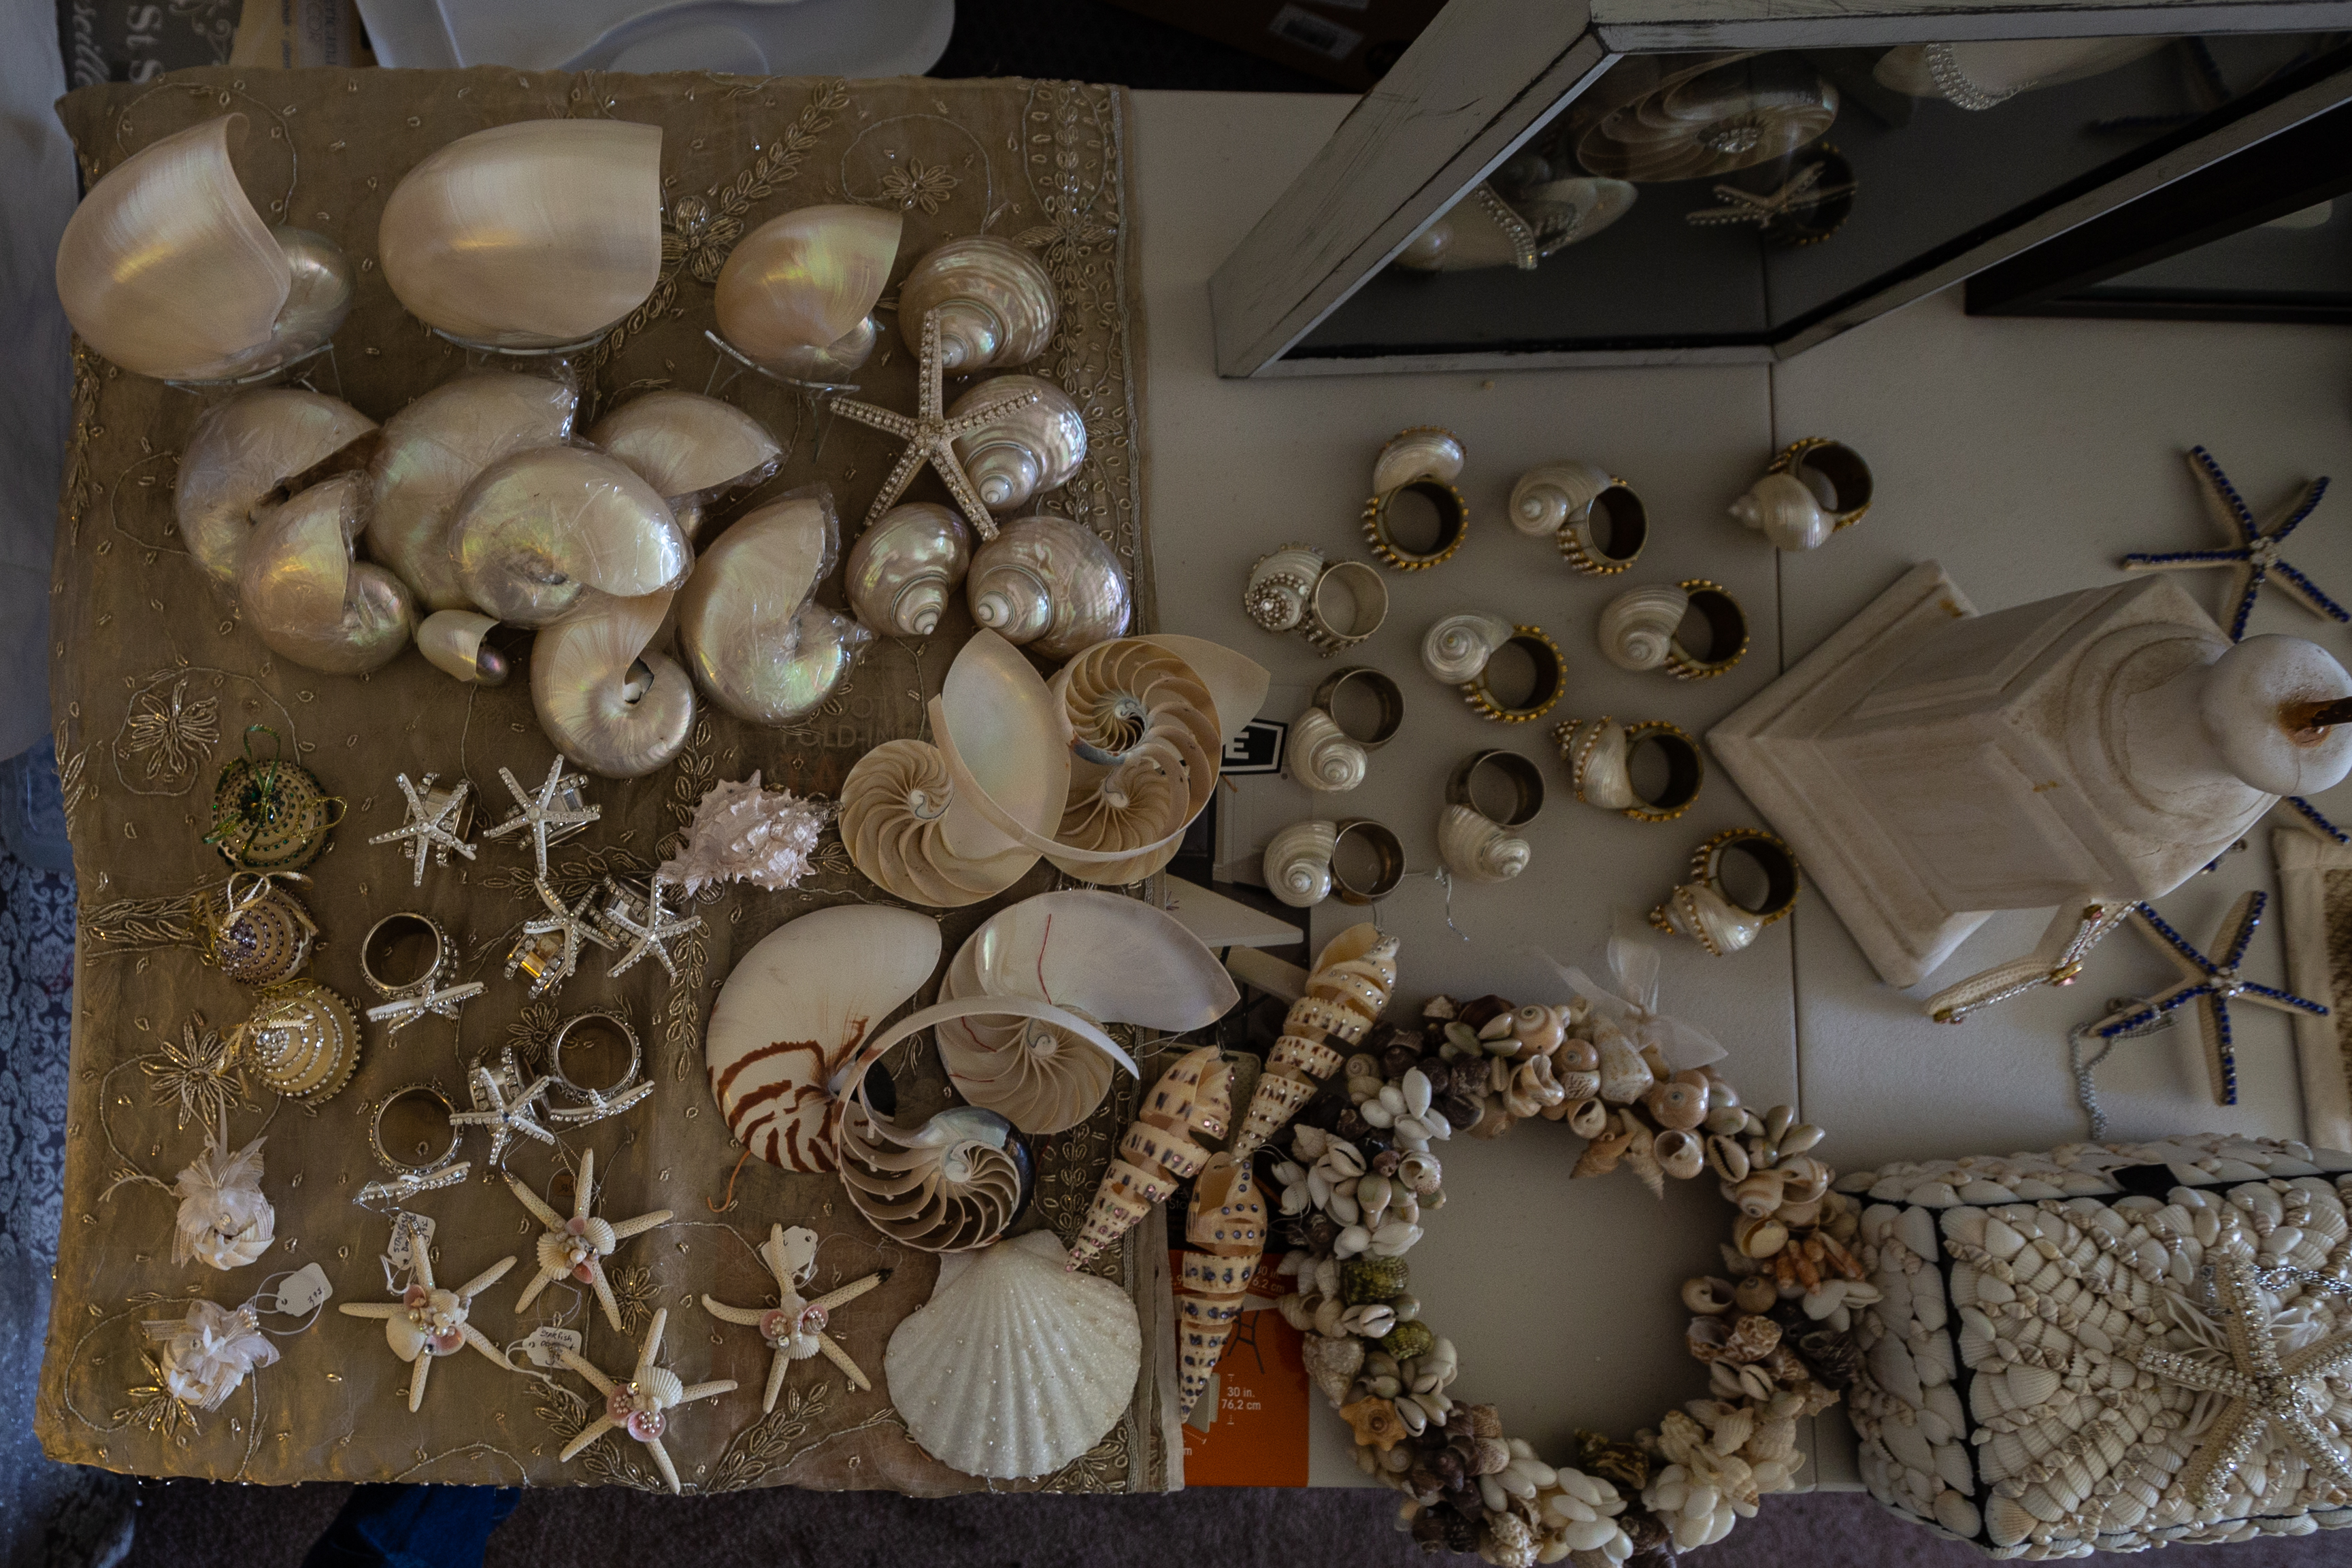 Decorative Seashell Business For Sale - Attn Crafters, Swap Meet Vendors, Antique/Craft Mall Vendors